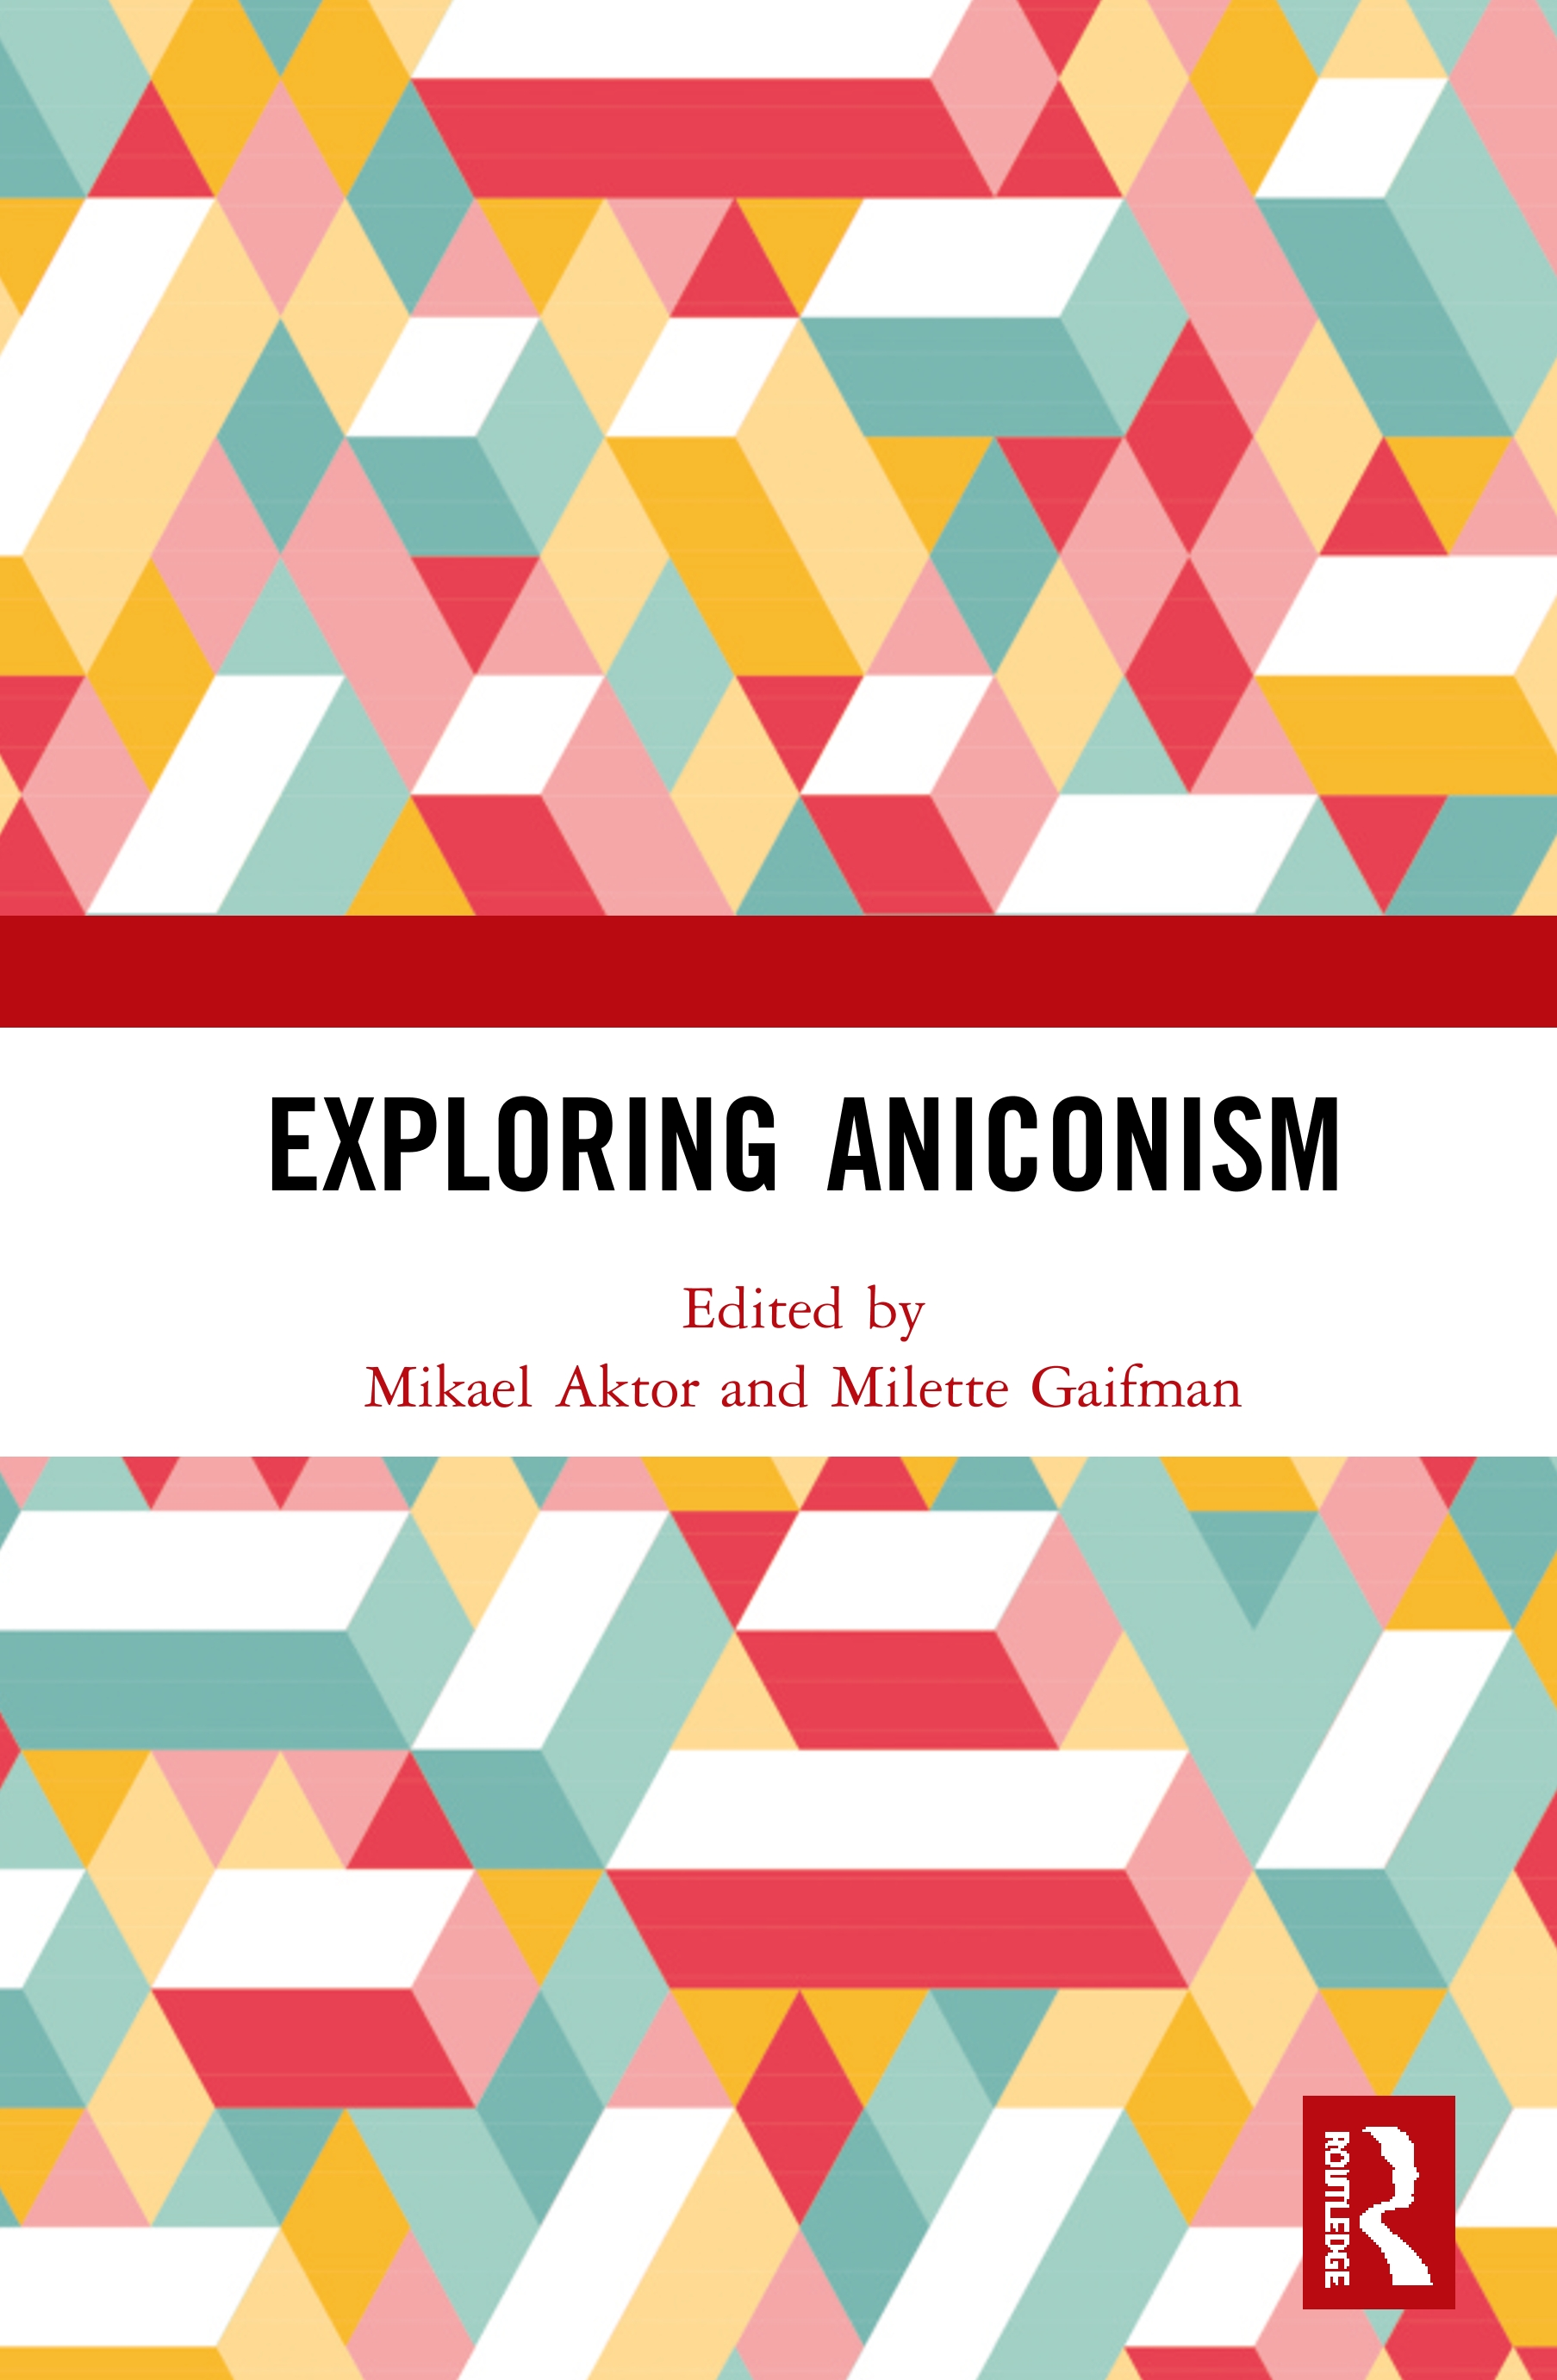 Exploring Aniconism book cover